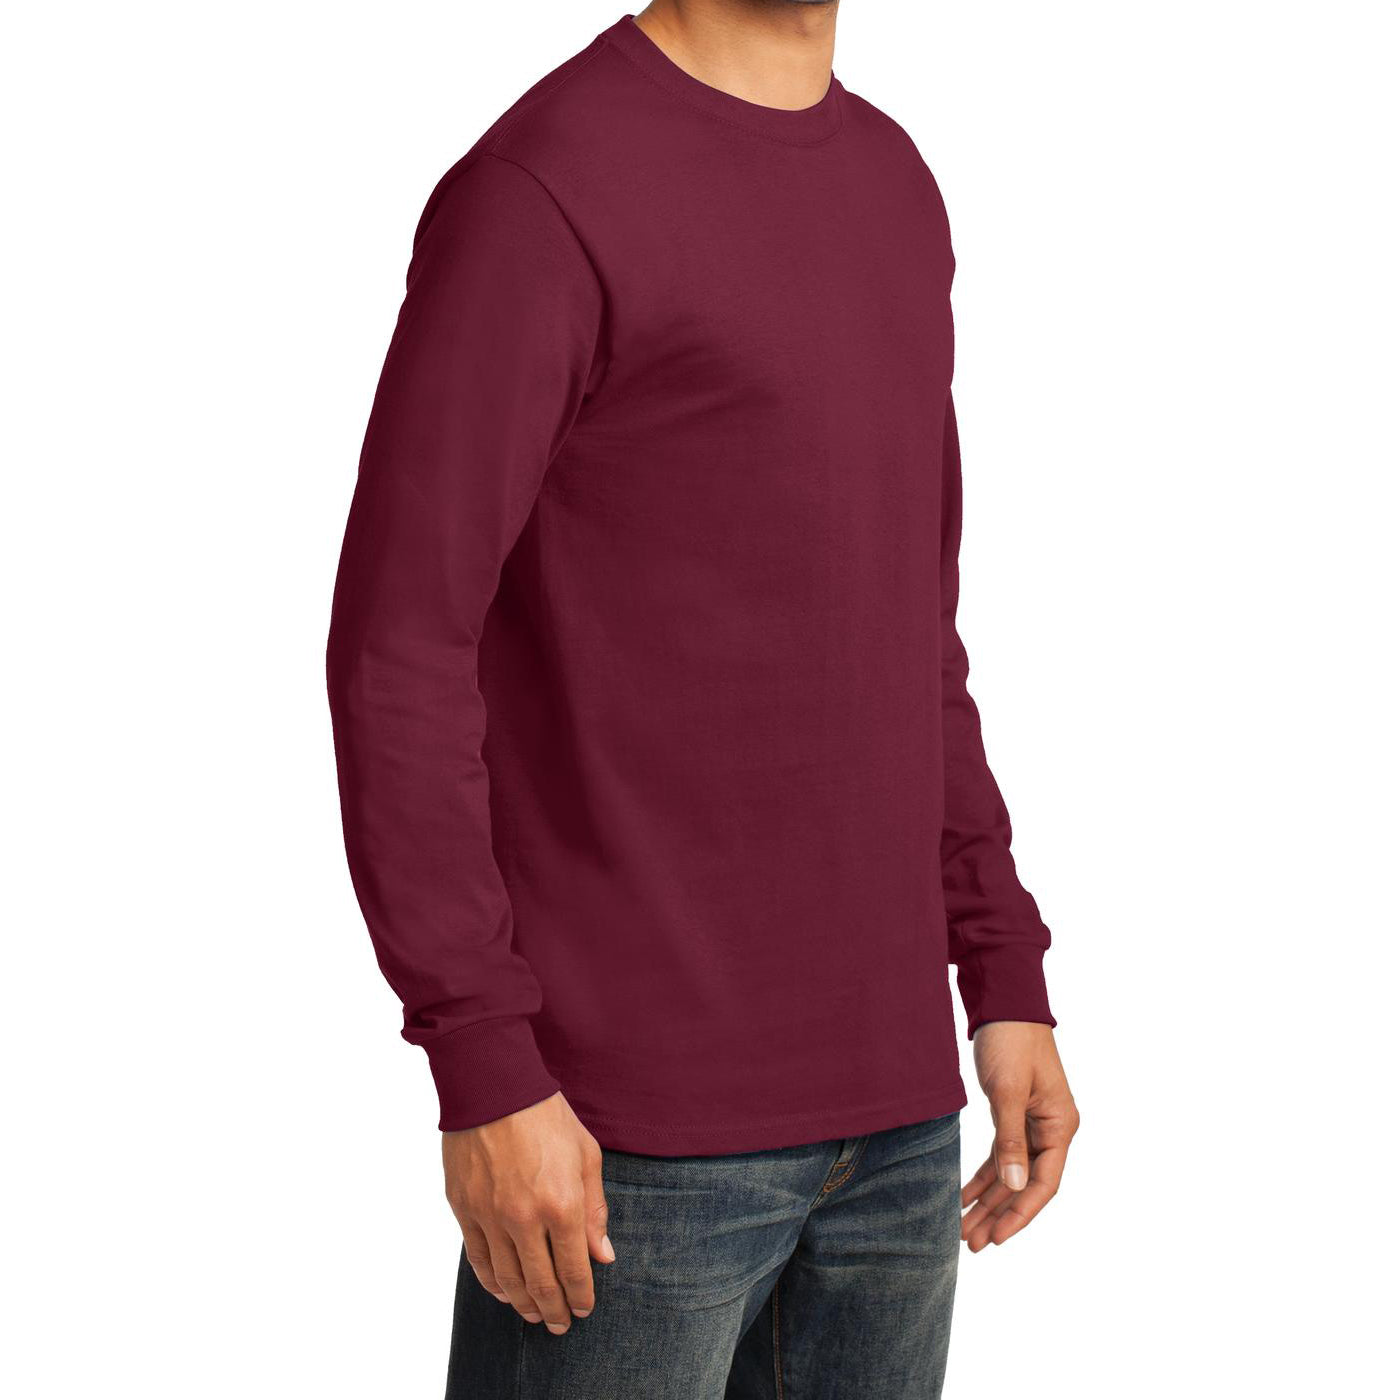 Men's Long Sleeve Essential Tee - Cardinal - Side